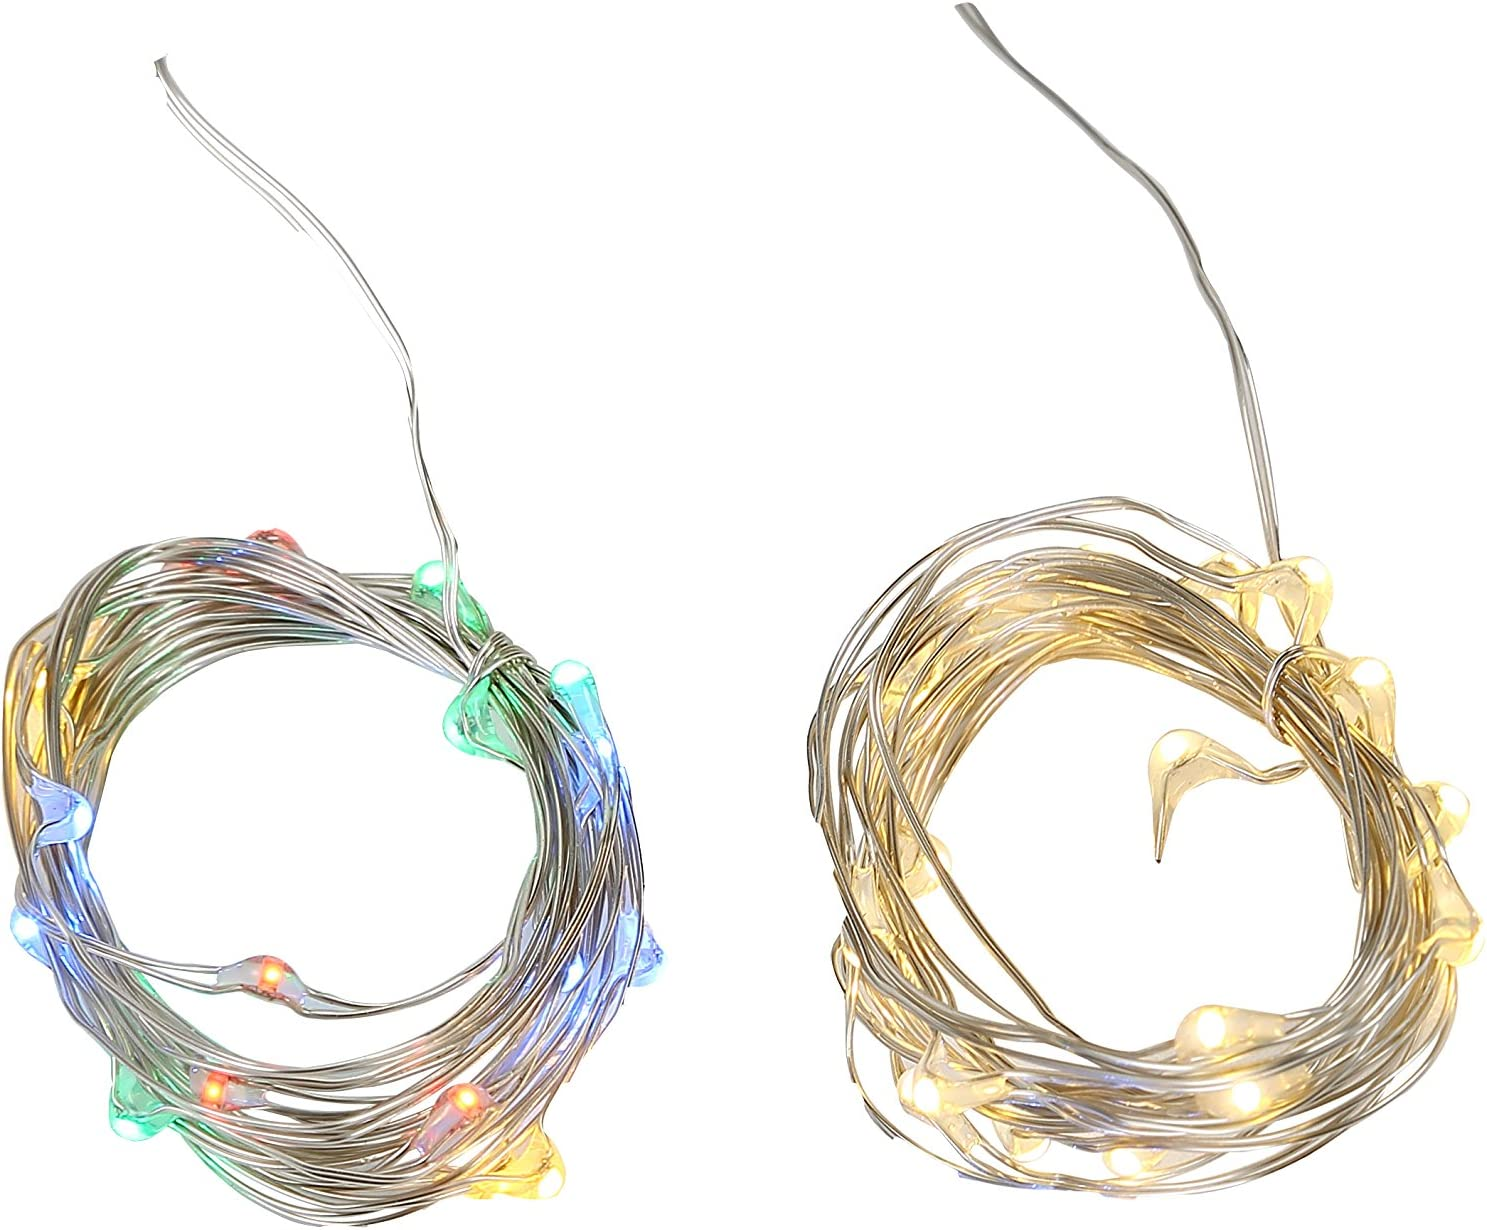 Twinkle Fairy String Lights Strands with 20 LEDs,Timer, Battery Operated for Easter, Garden, Home, Wedding, Party, Christmas Decoration(Set of 2)(Warm White & Multi Color)